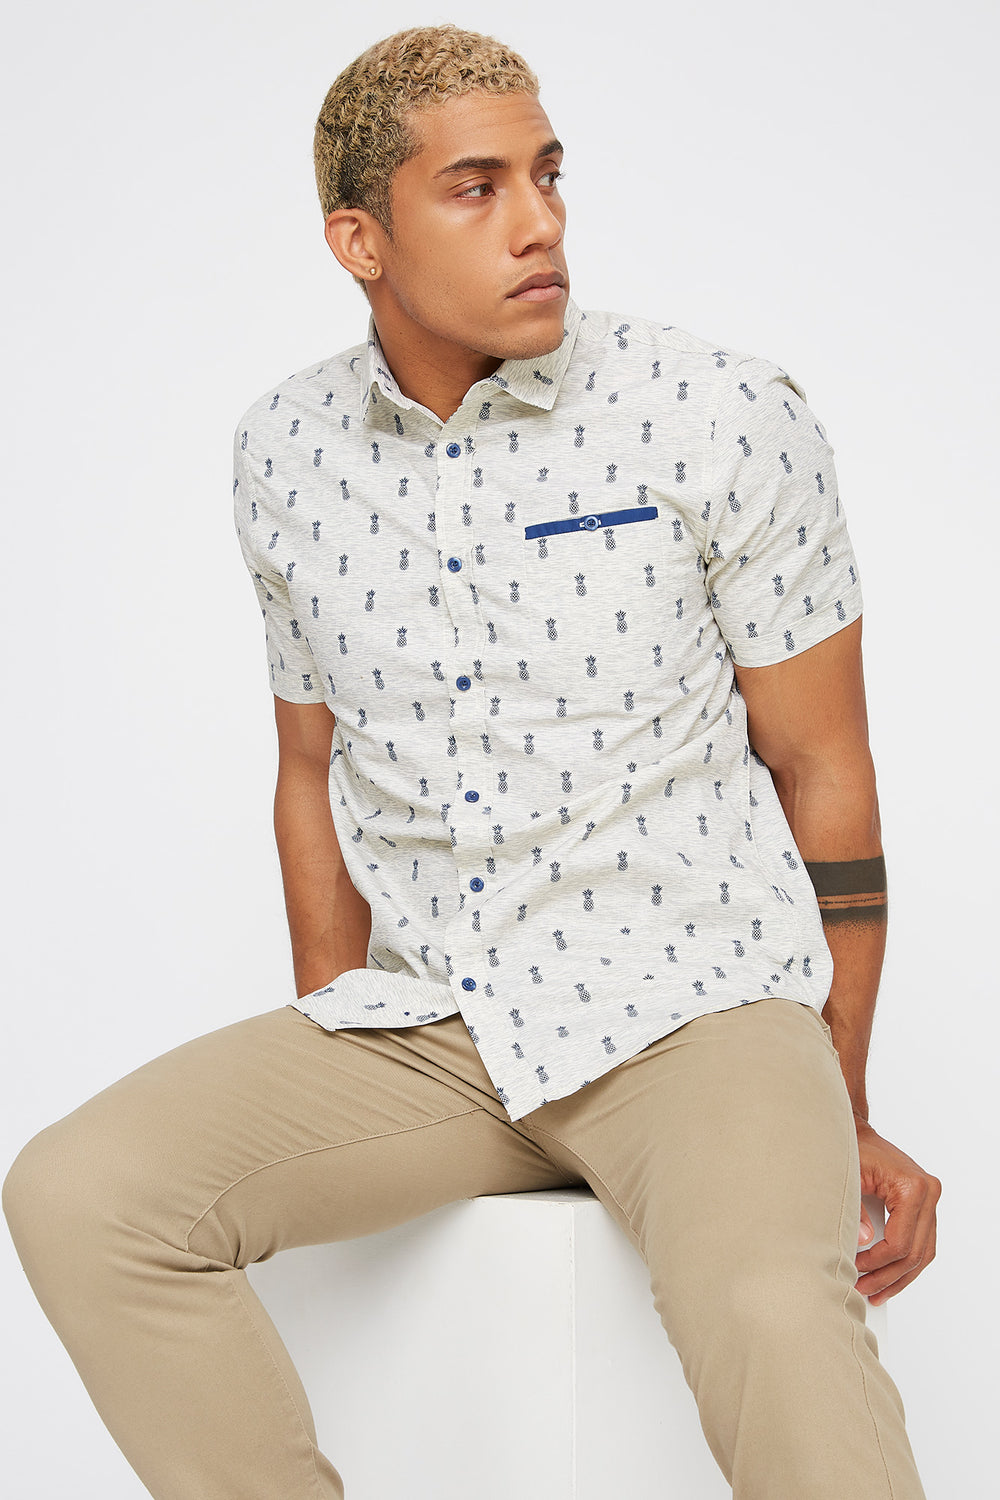 Printed Pocket Button-Up Short Sleeve Shirt Oatmeal